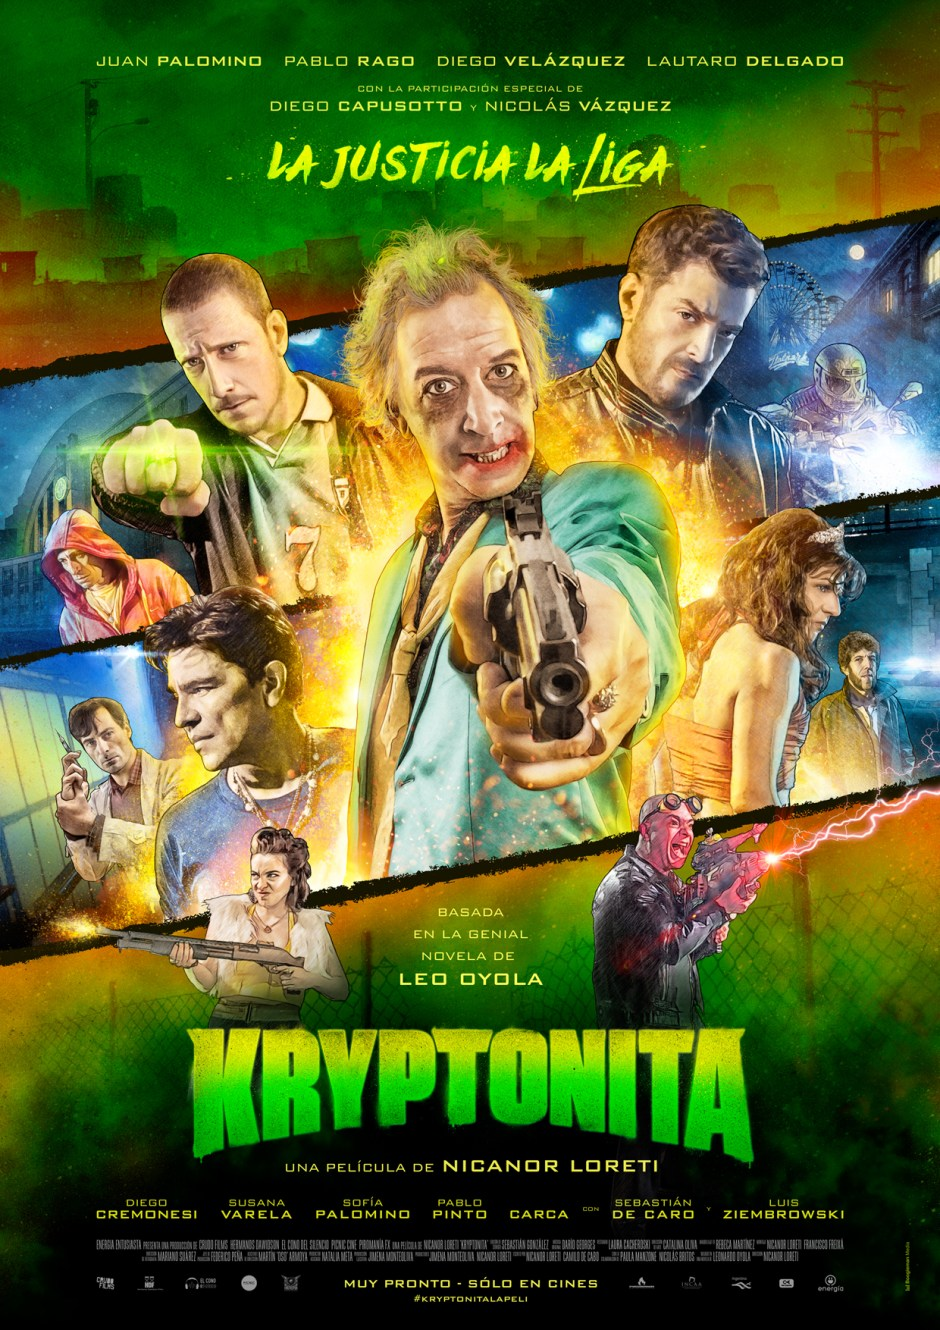 833a01 - Poster Kryptonita Baja